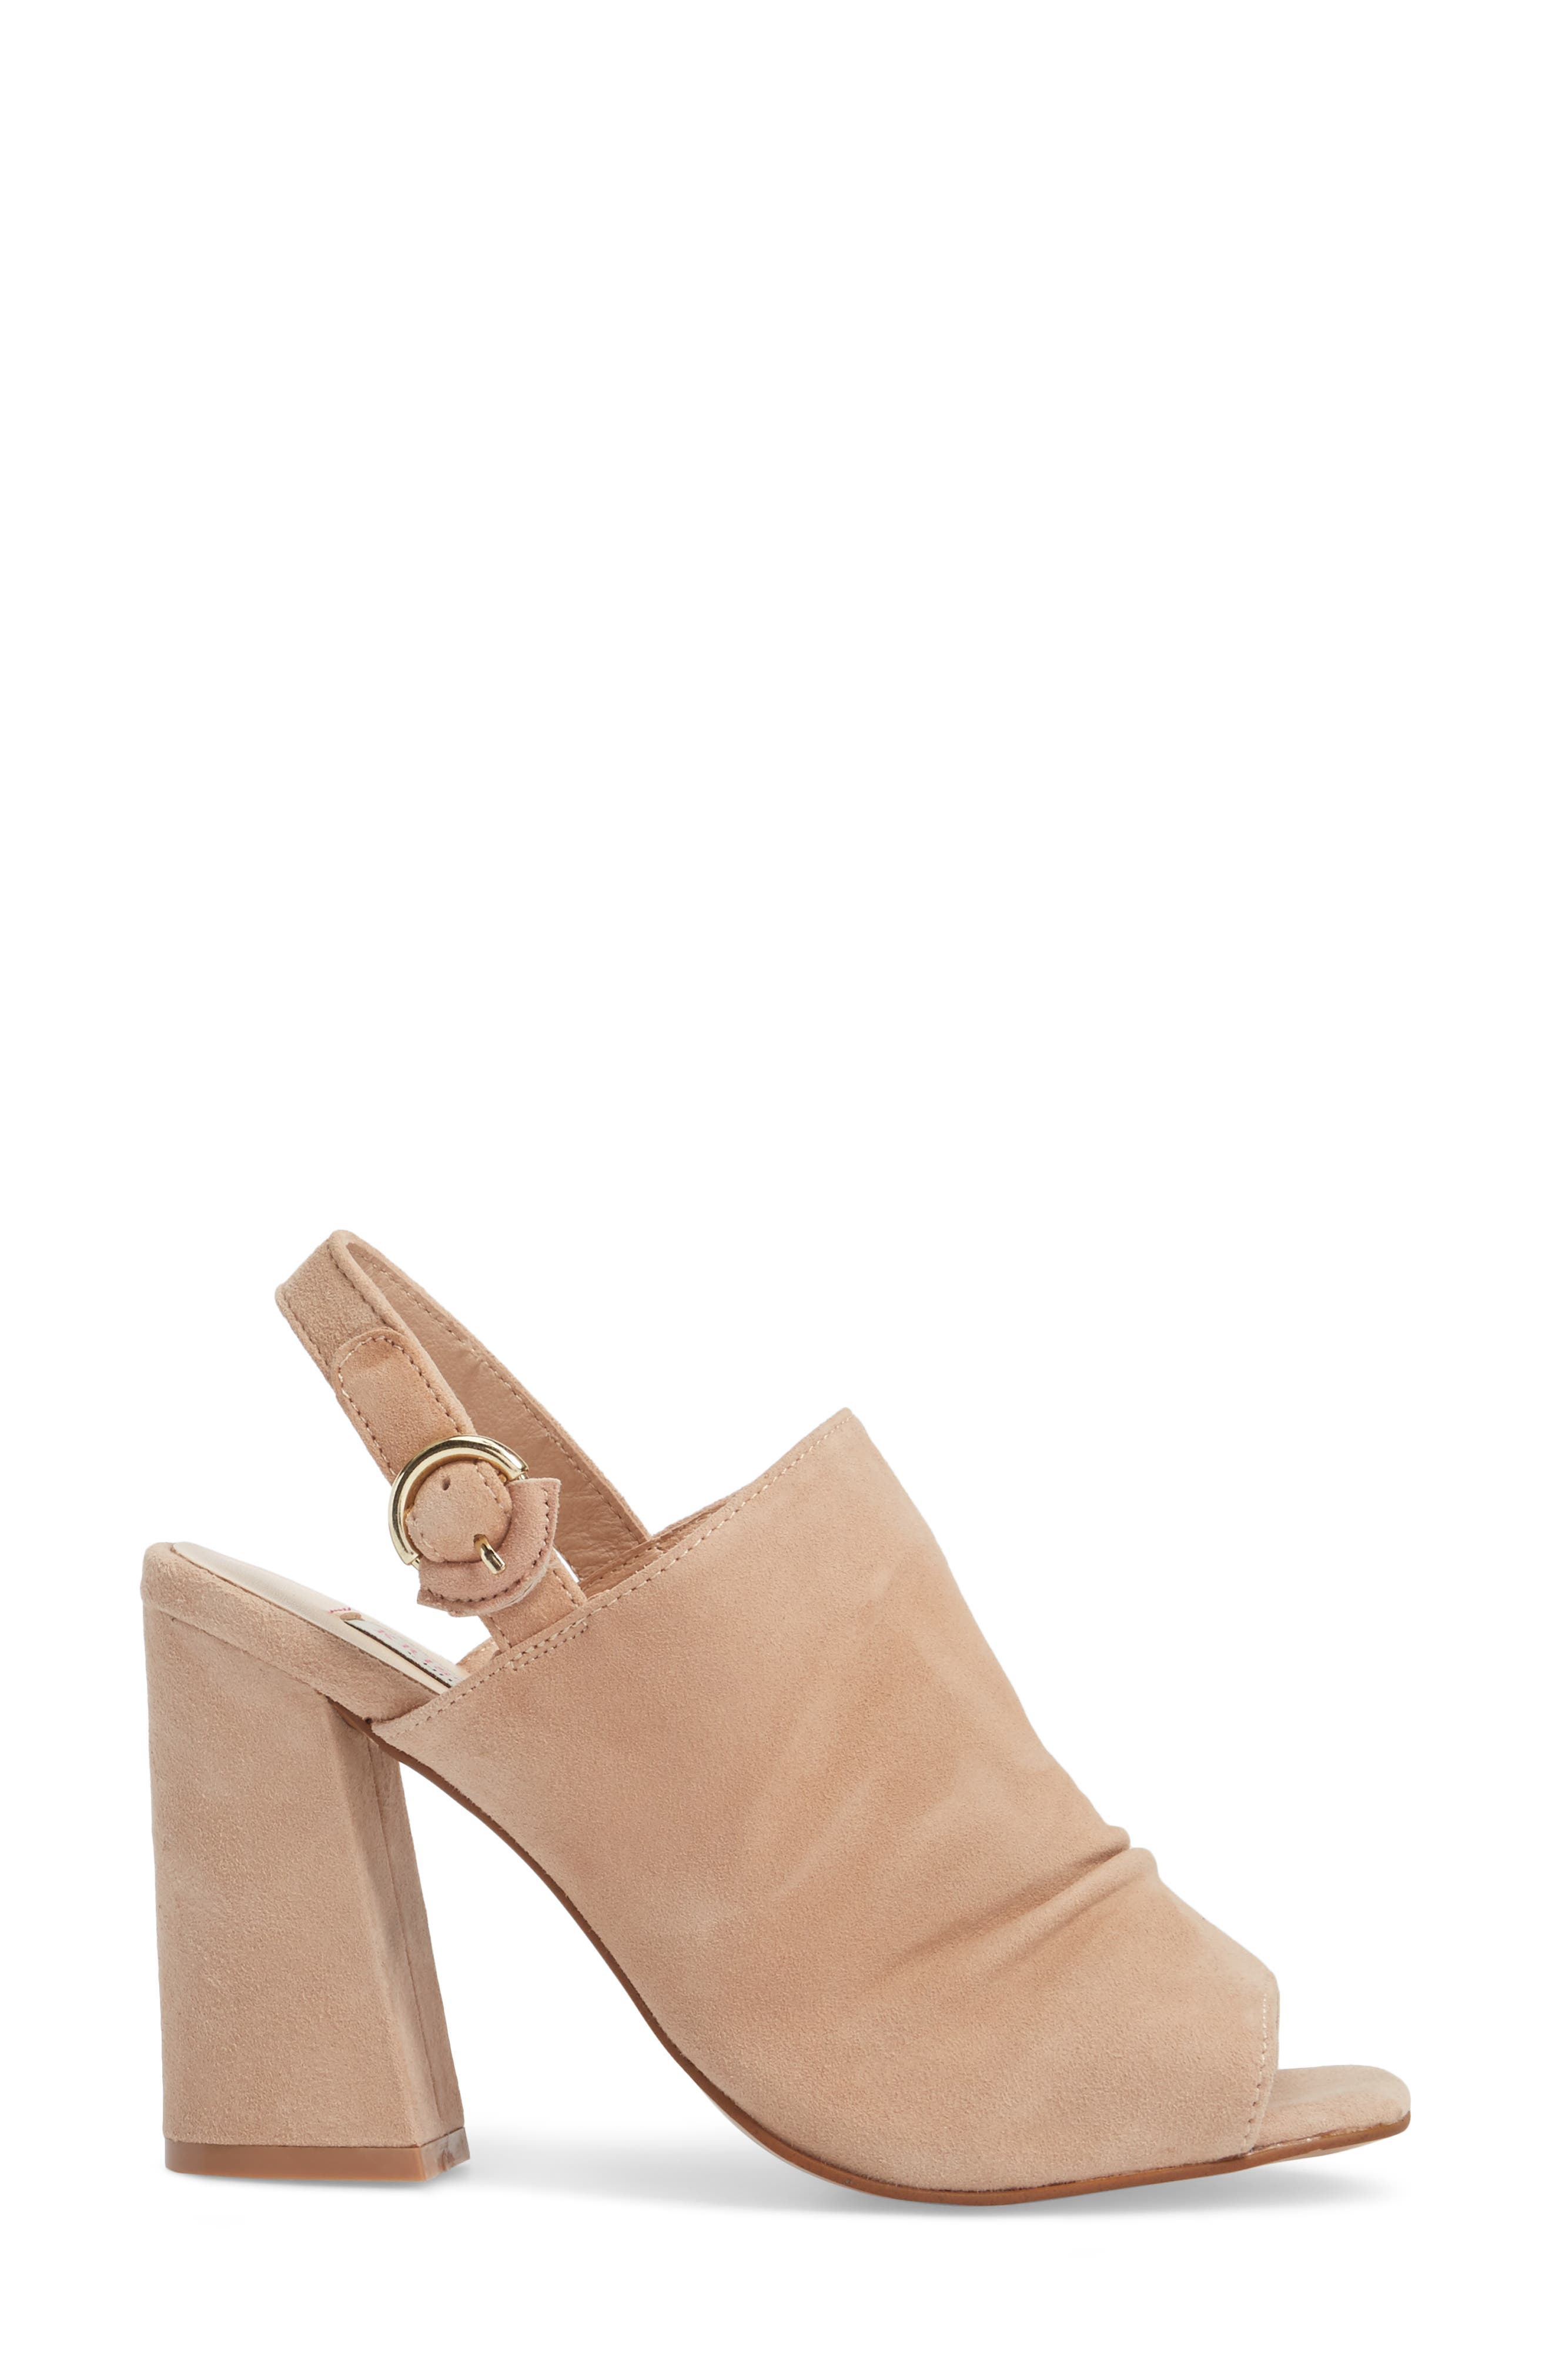 Lilla Slingback Sandal,                             Alternate thumbnail 3, color,                             Tigers Eye Suede